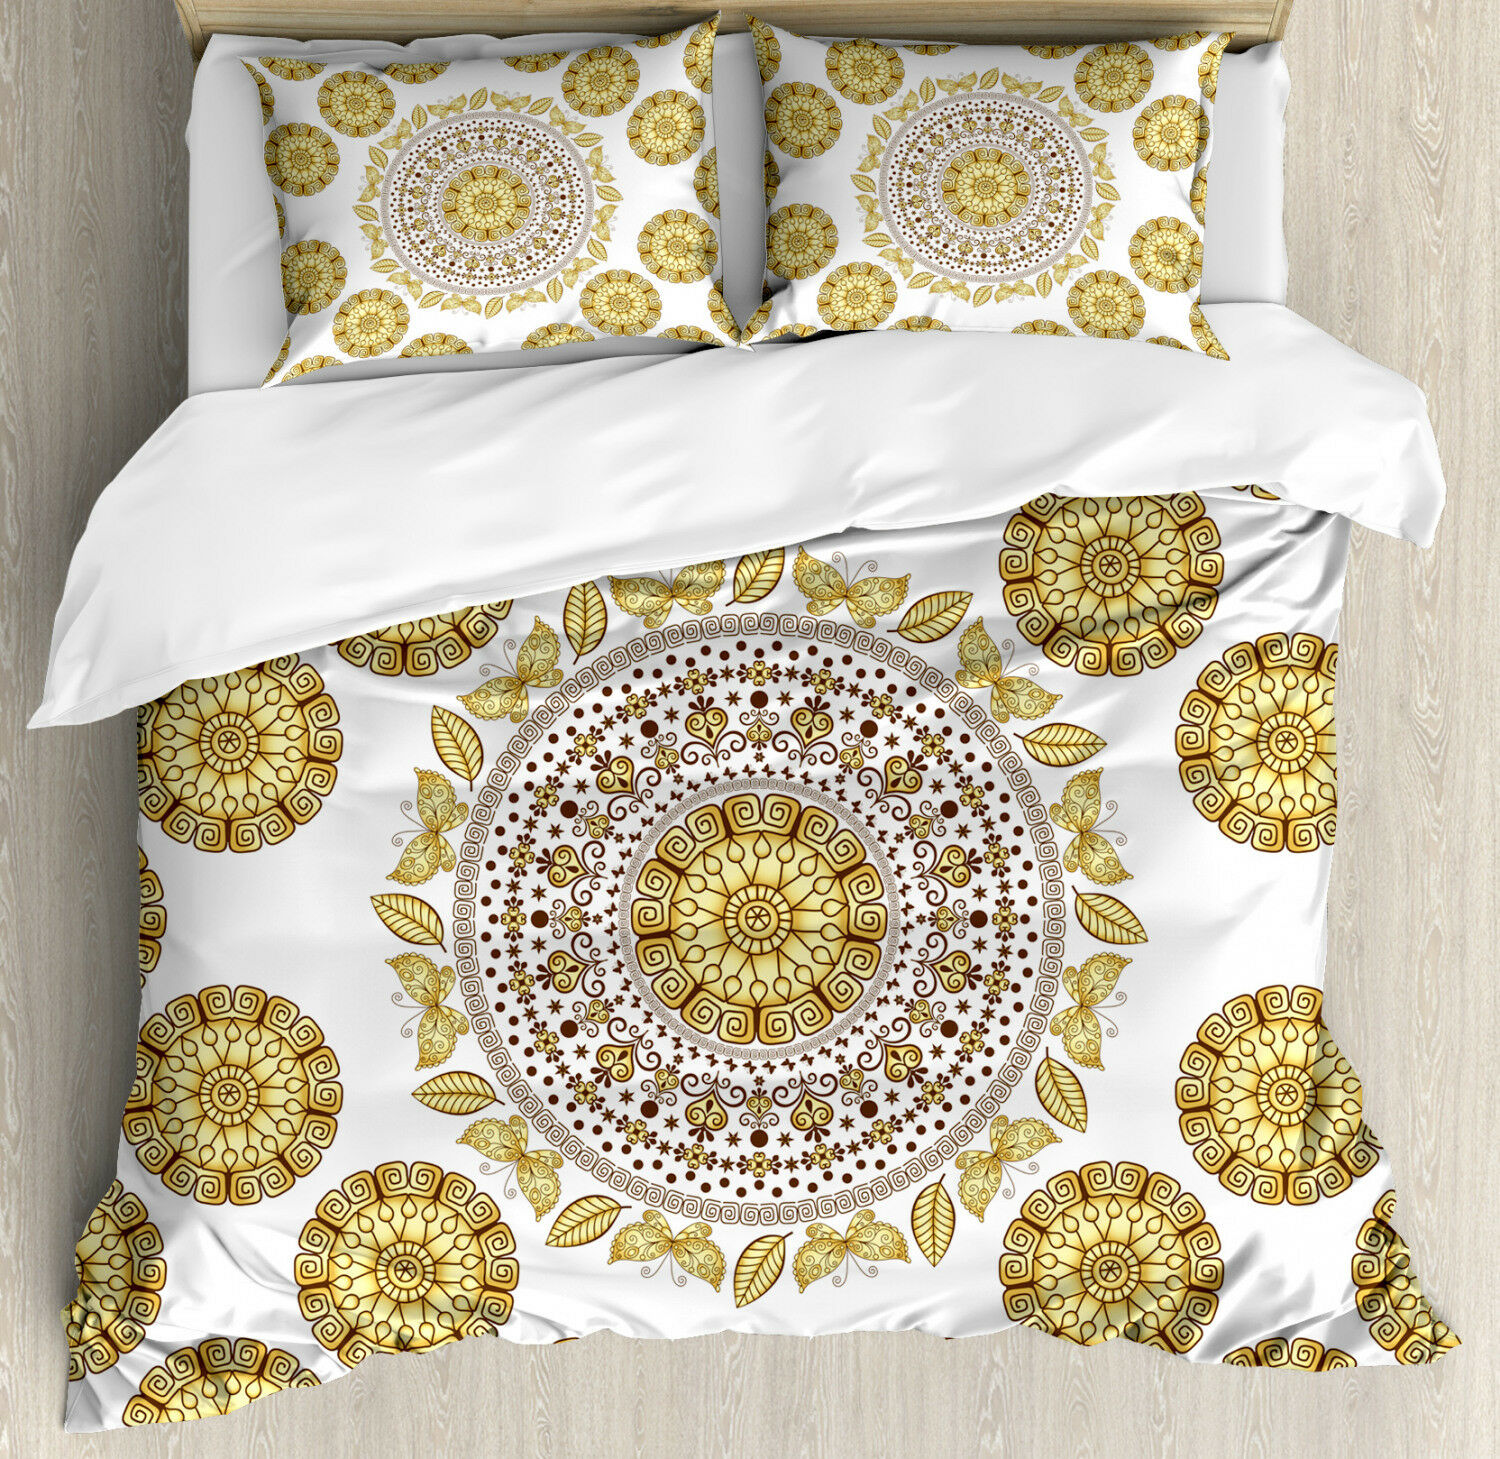 Mandala Duvet Cover Set with Pillow Shams Ancient Natural Leaves Print